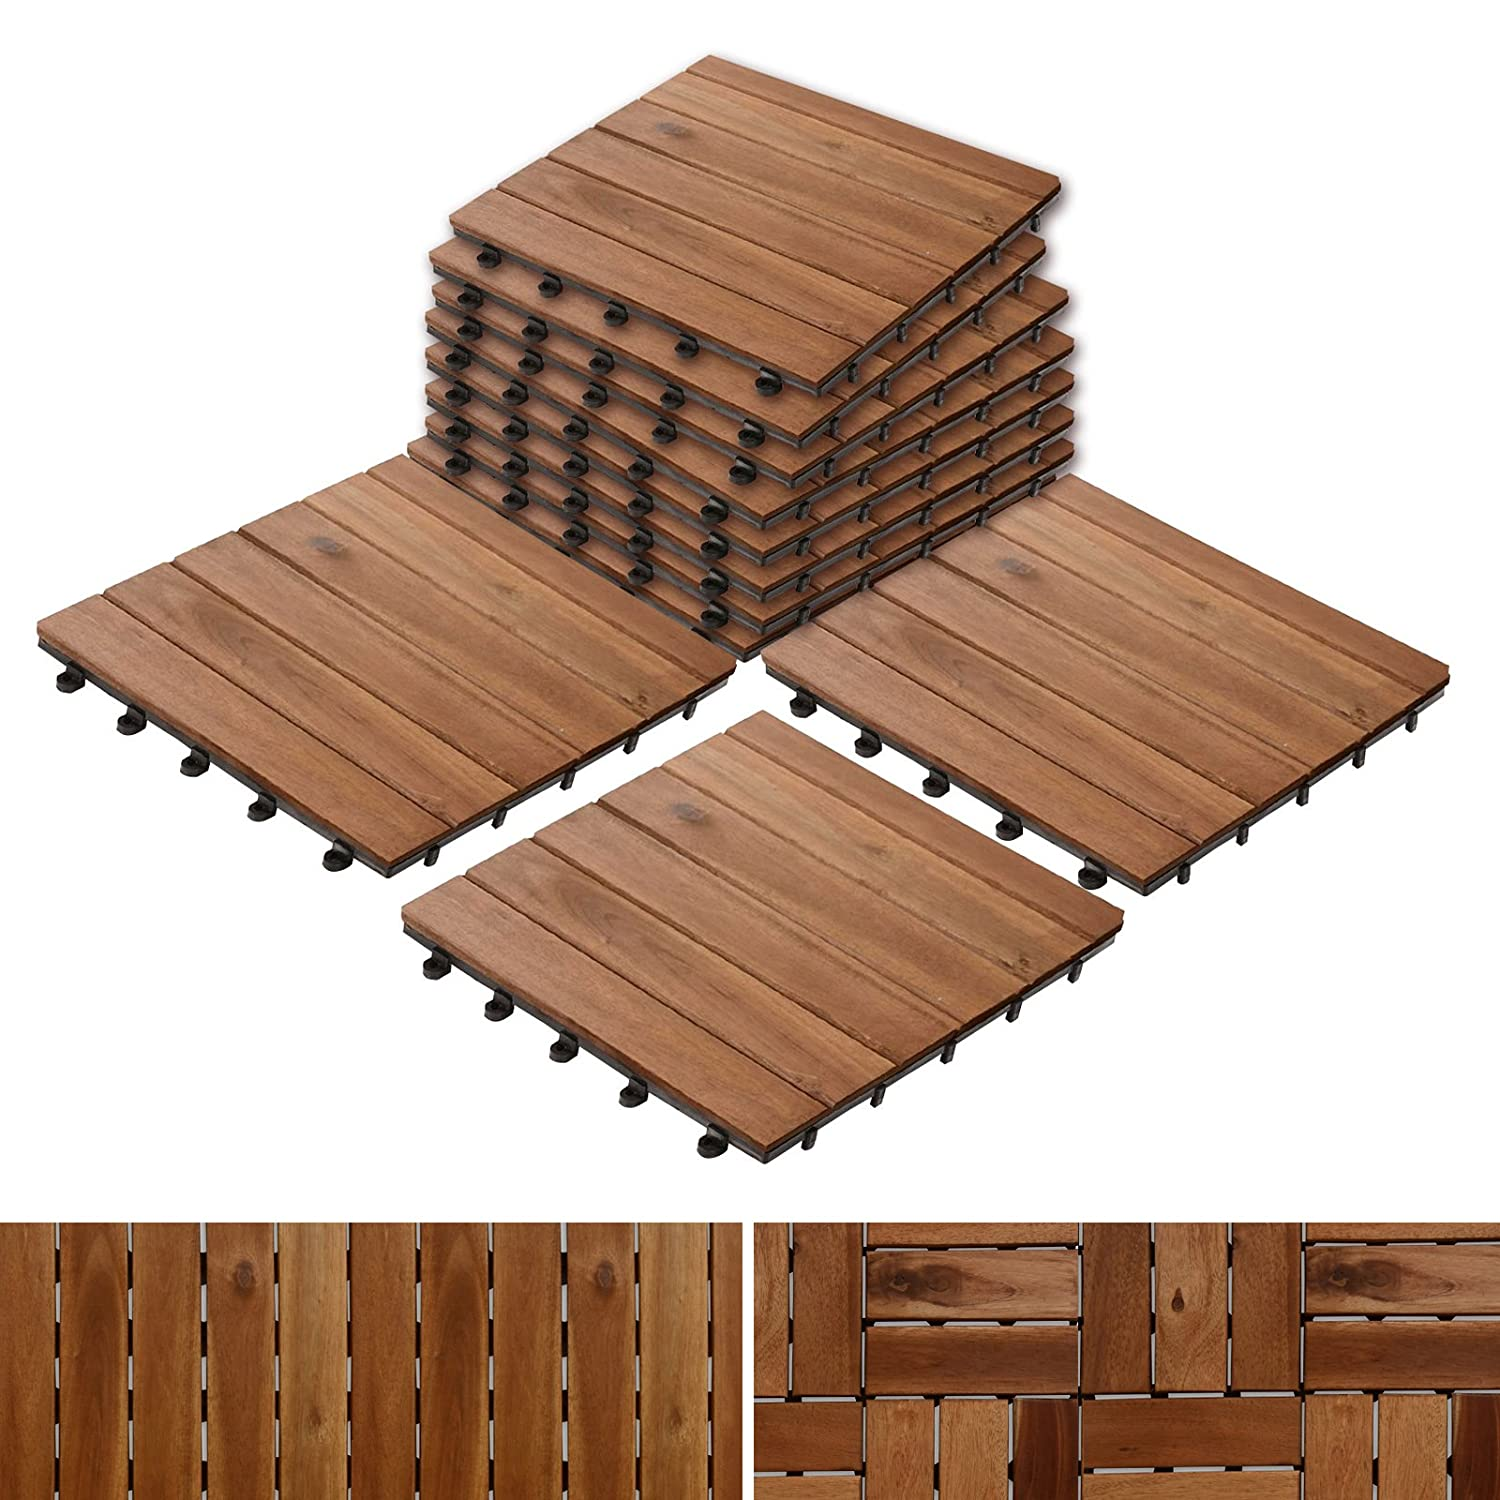 Patio pavers composite decking flooring and deck tiles for Composite decking sale